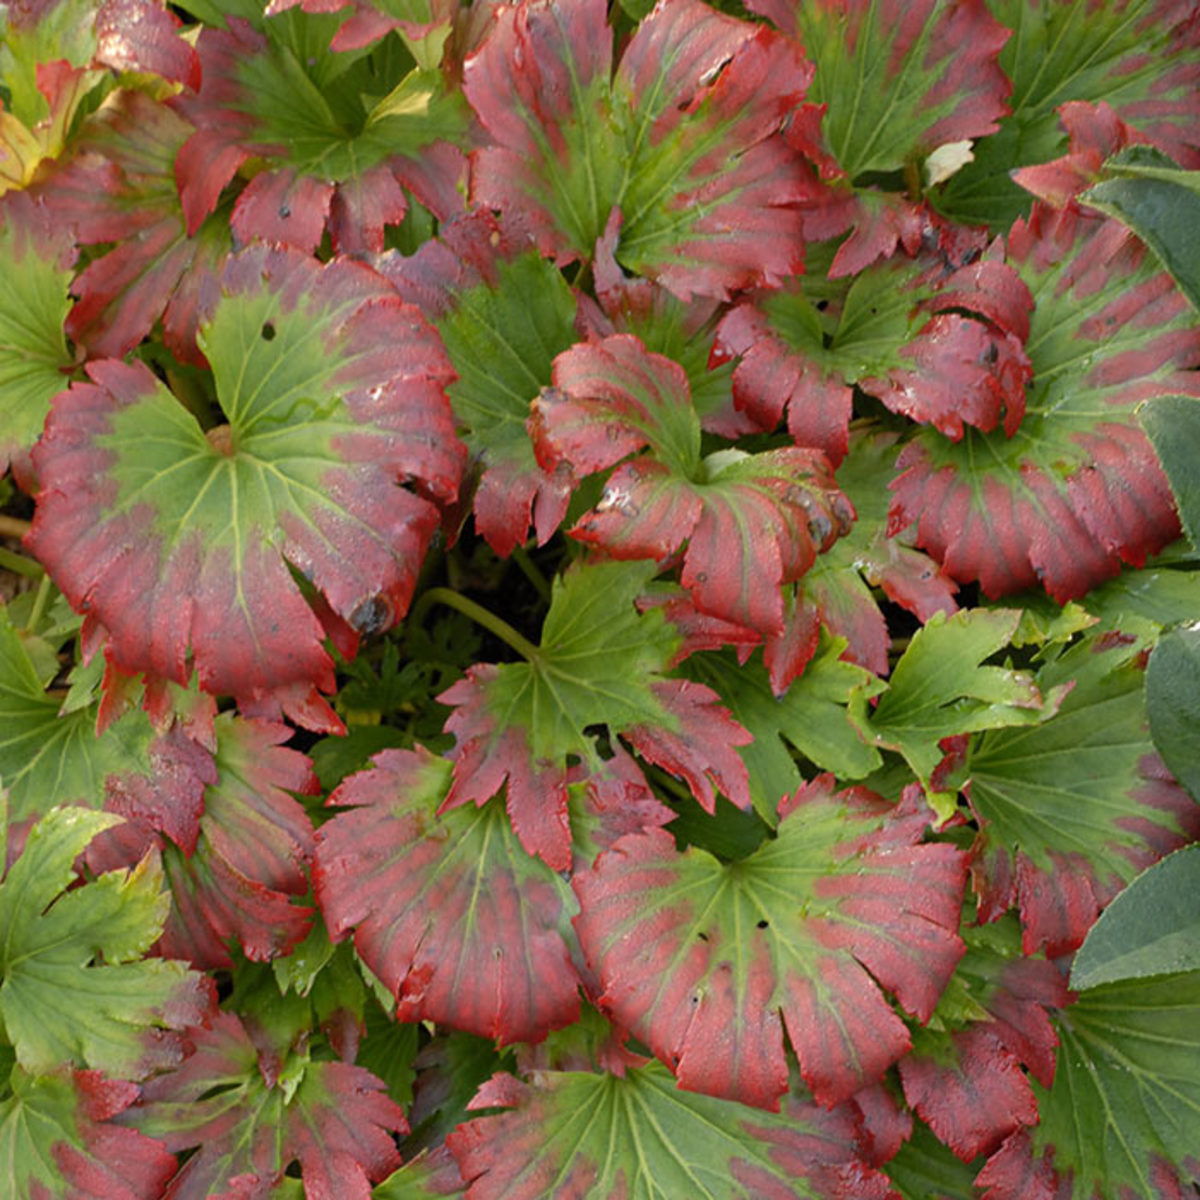 Red edges appear on the foliage beginning in summer. The color intensifies and spreads until the whole leaf shines crimson in the fall.